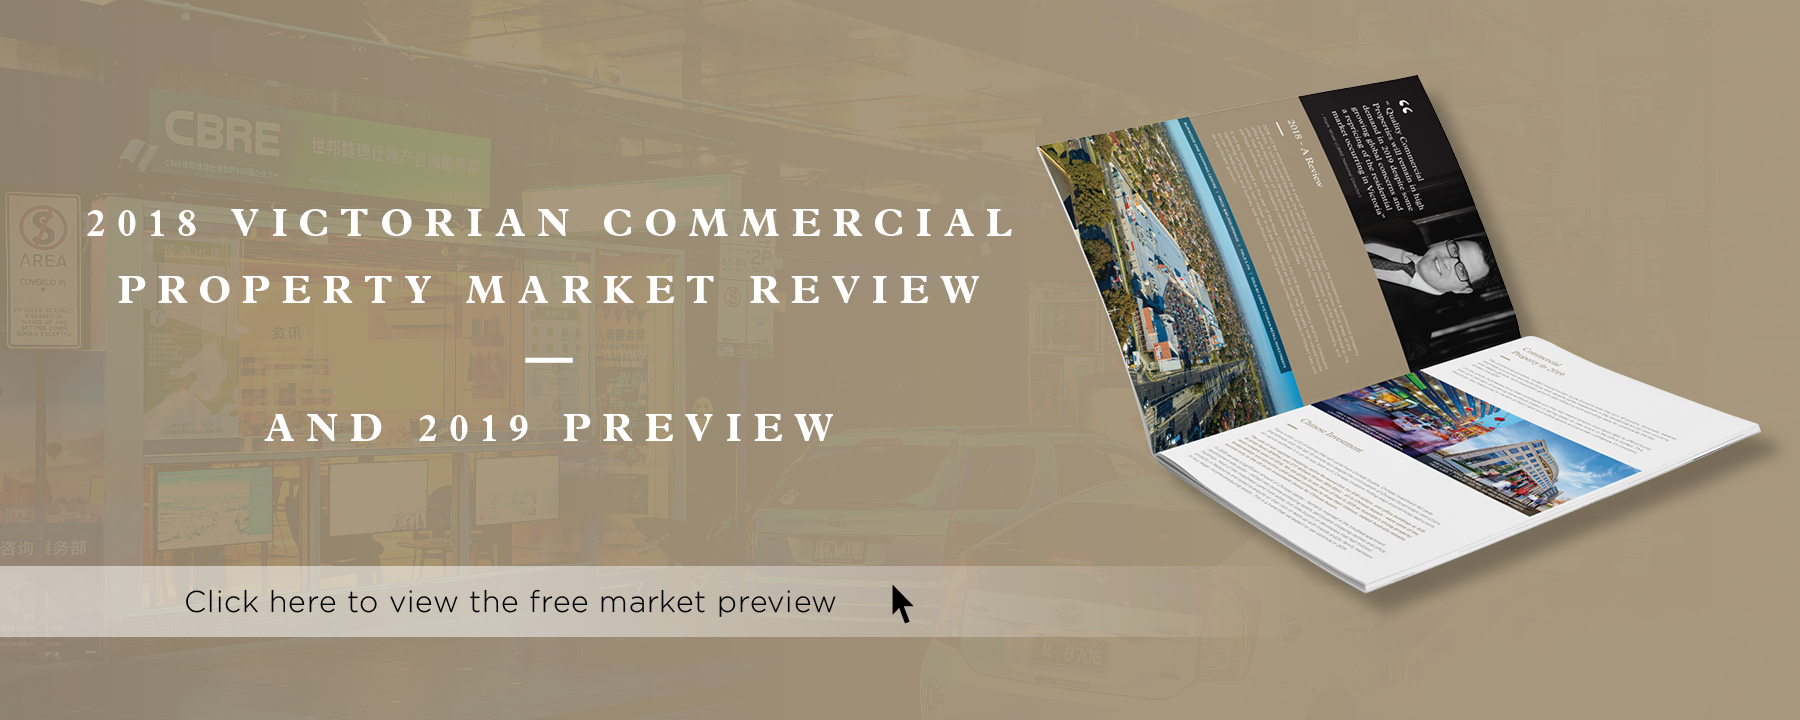 CBRE_Mark Wizel Year in Review_1800x720px_V2